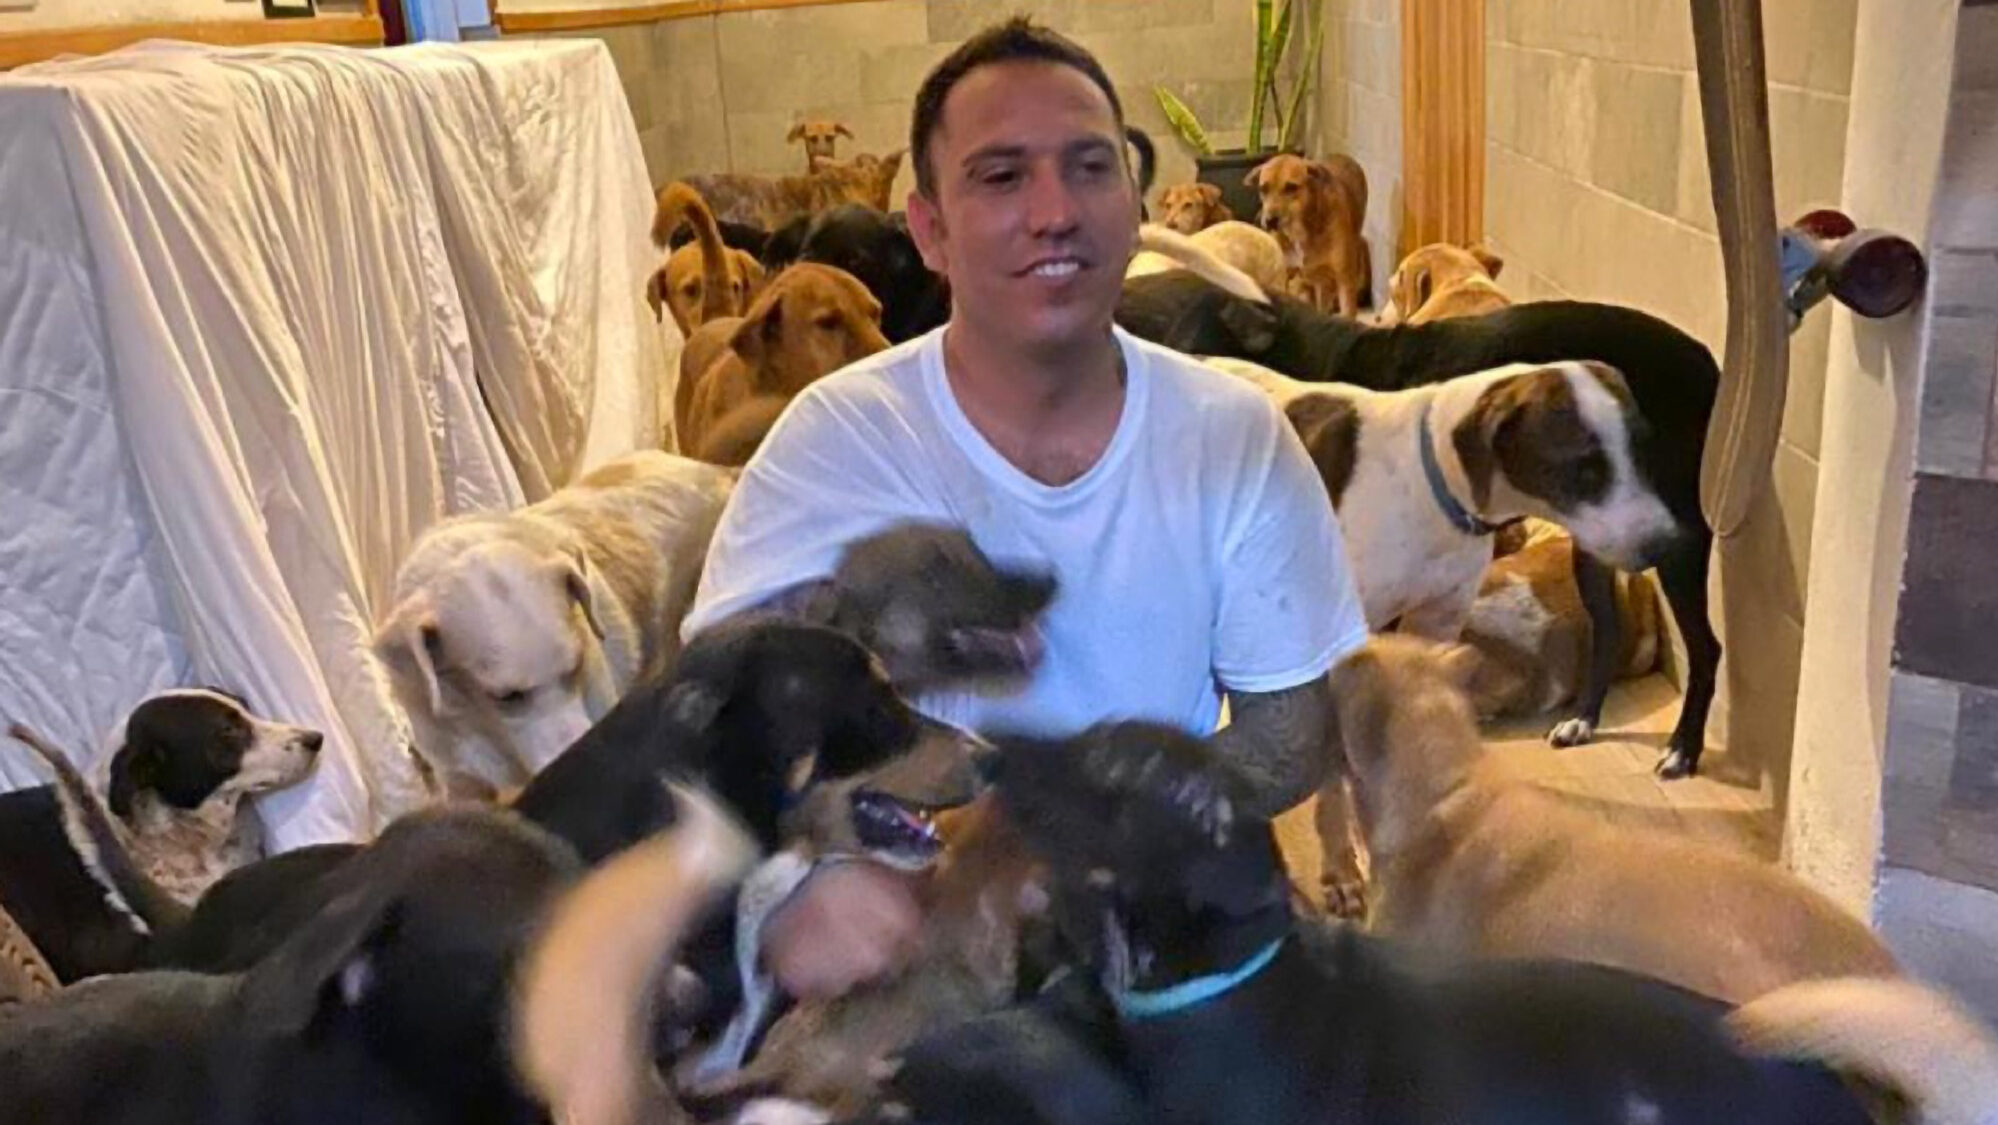 VIDEO: Man Shelters 300 Dogs In His Home From Hurricane Delta